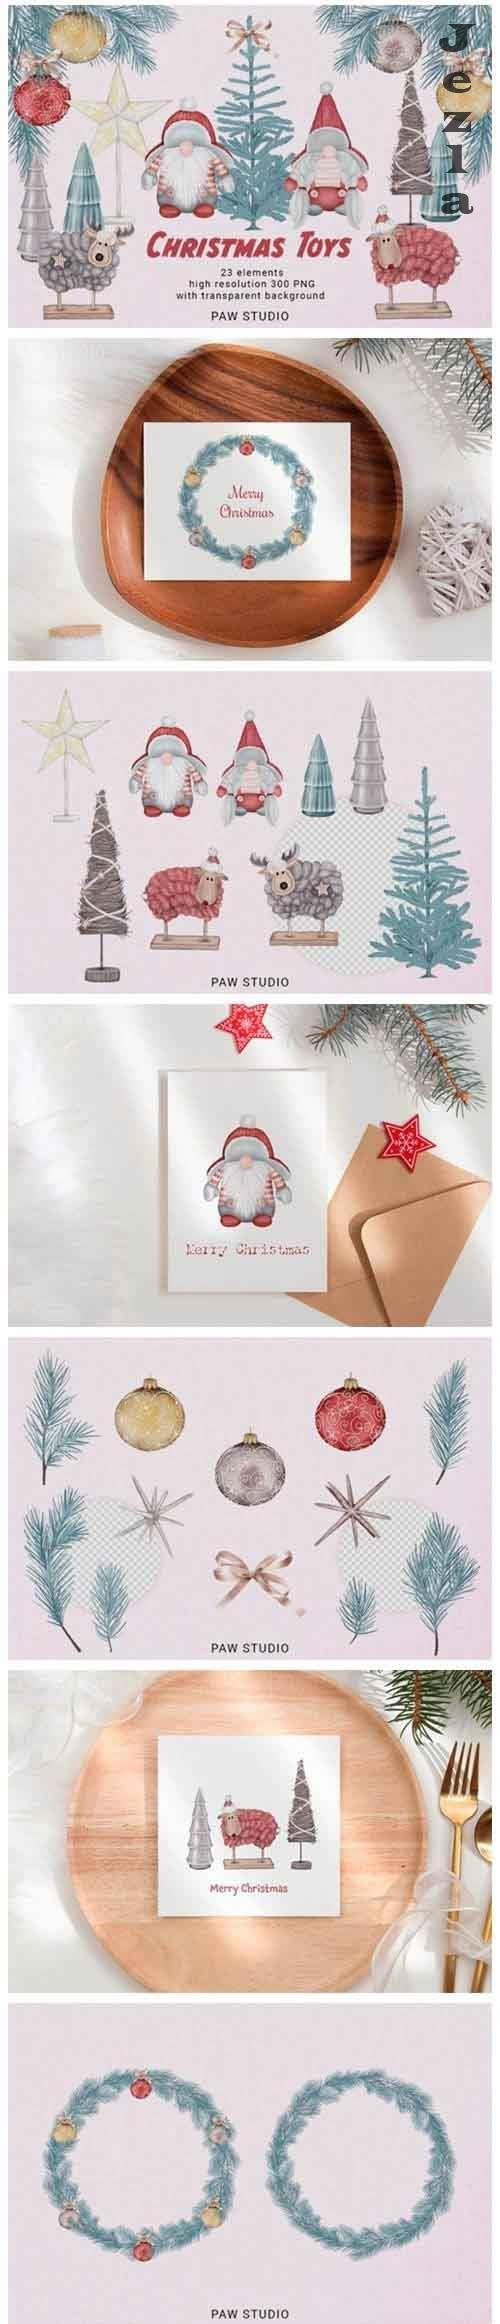 Gnomes Tree Wreath Deer Sheep Holiday Clipart - 1018003